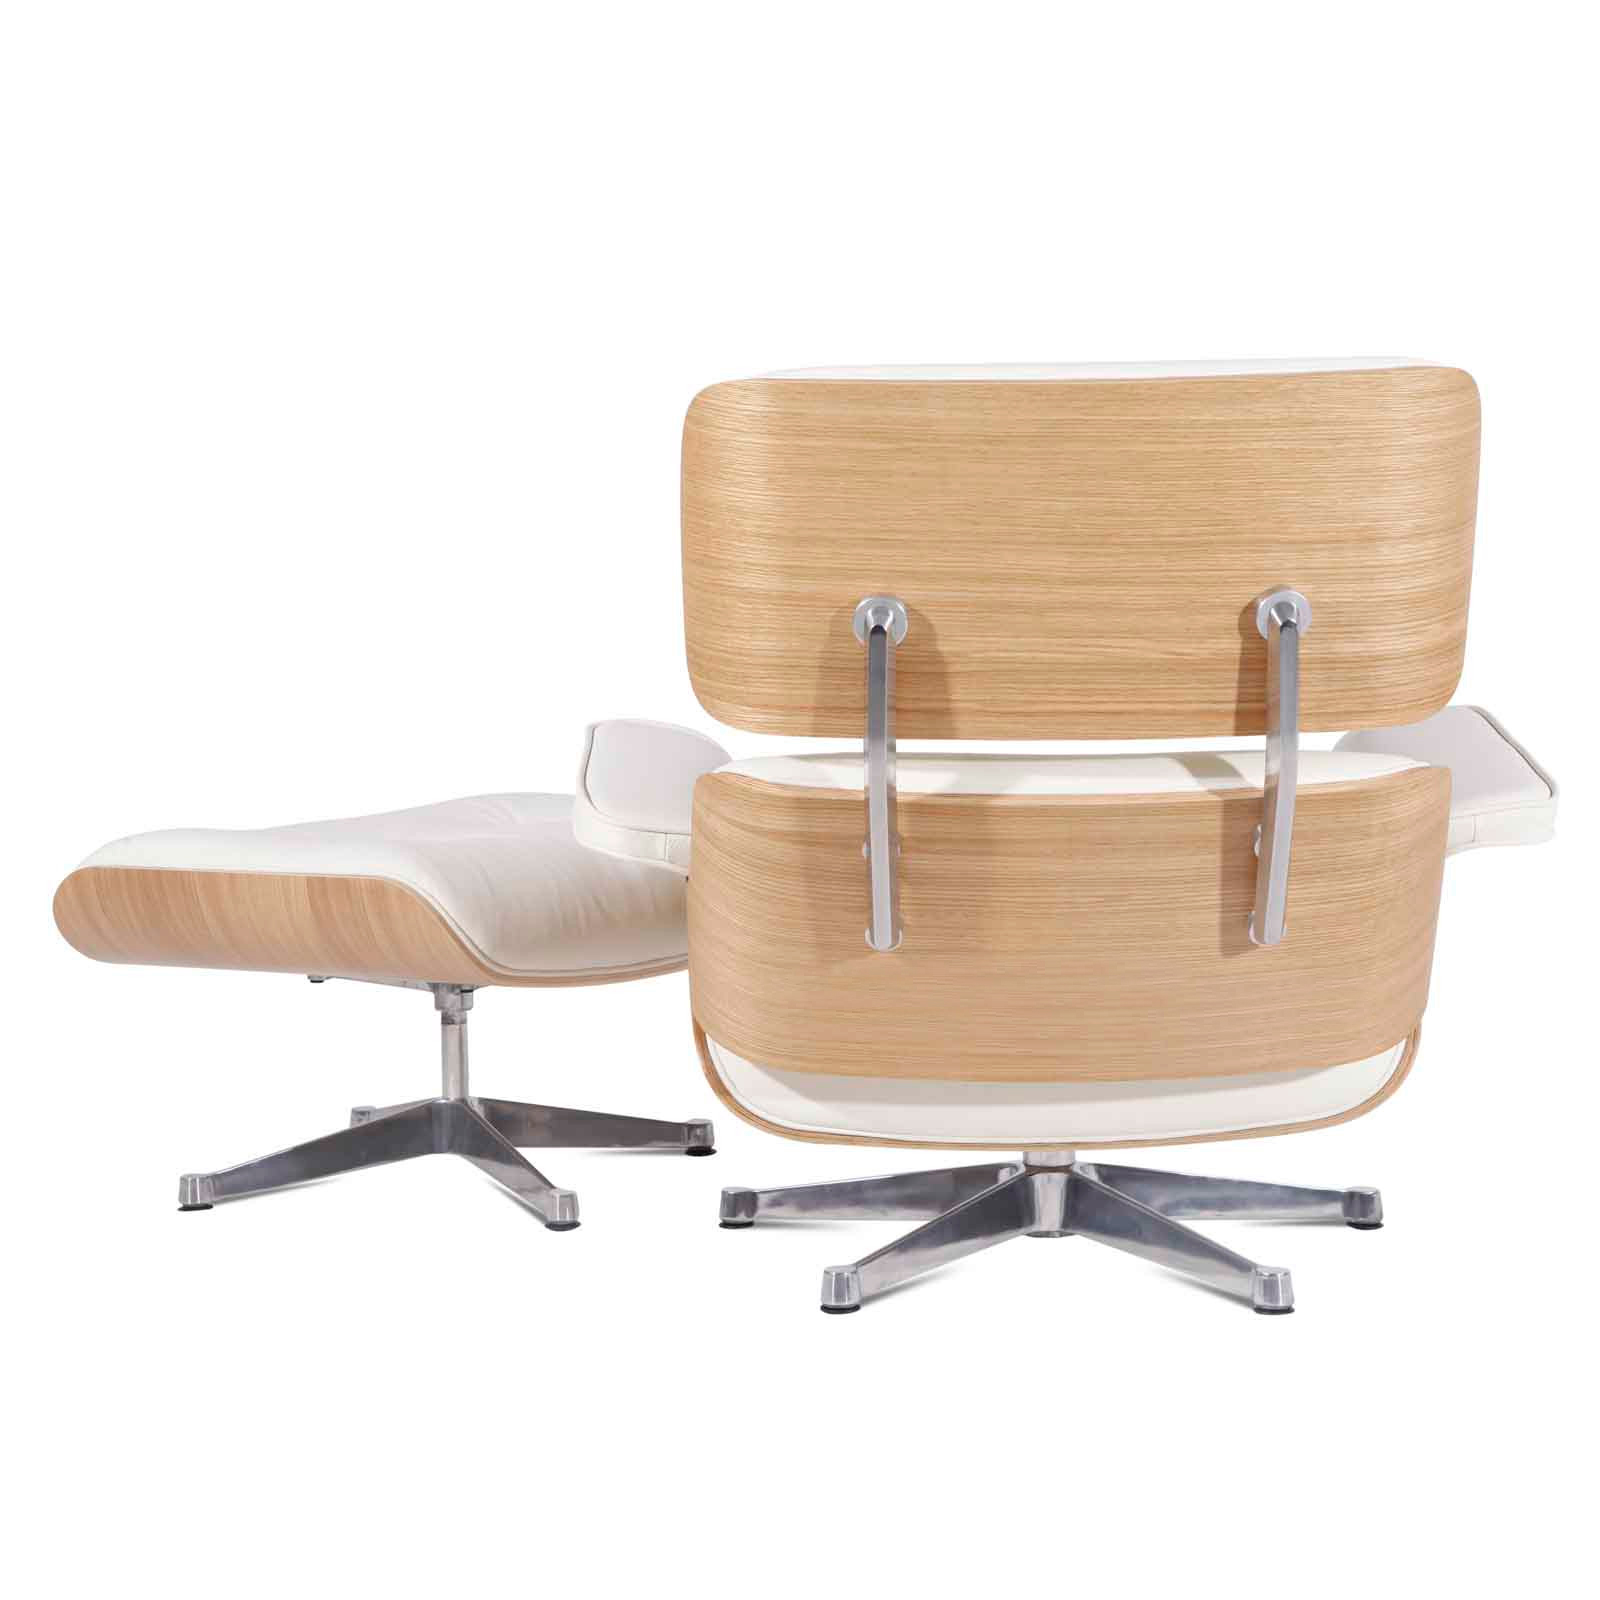 Swell Eames Lounge Chair Ottoman Rentals Delivery Pabps2019 Chair Design Images Pabps2019Com